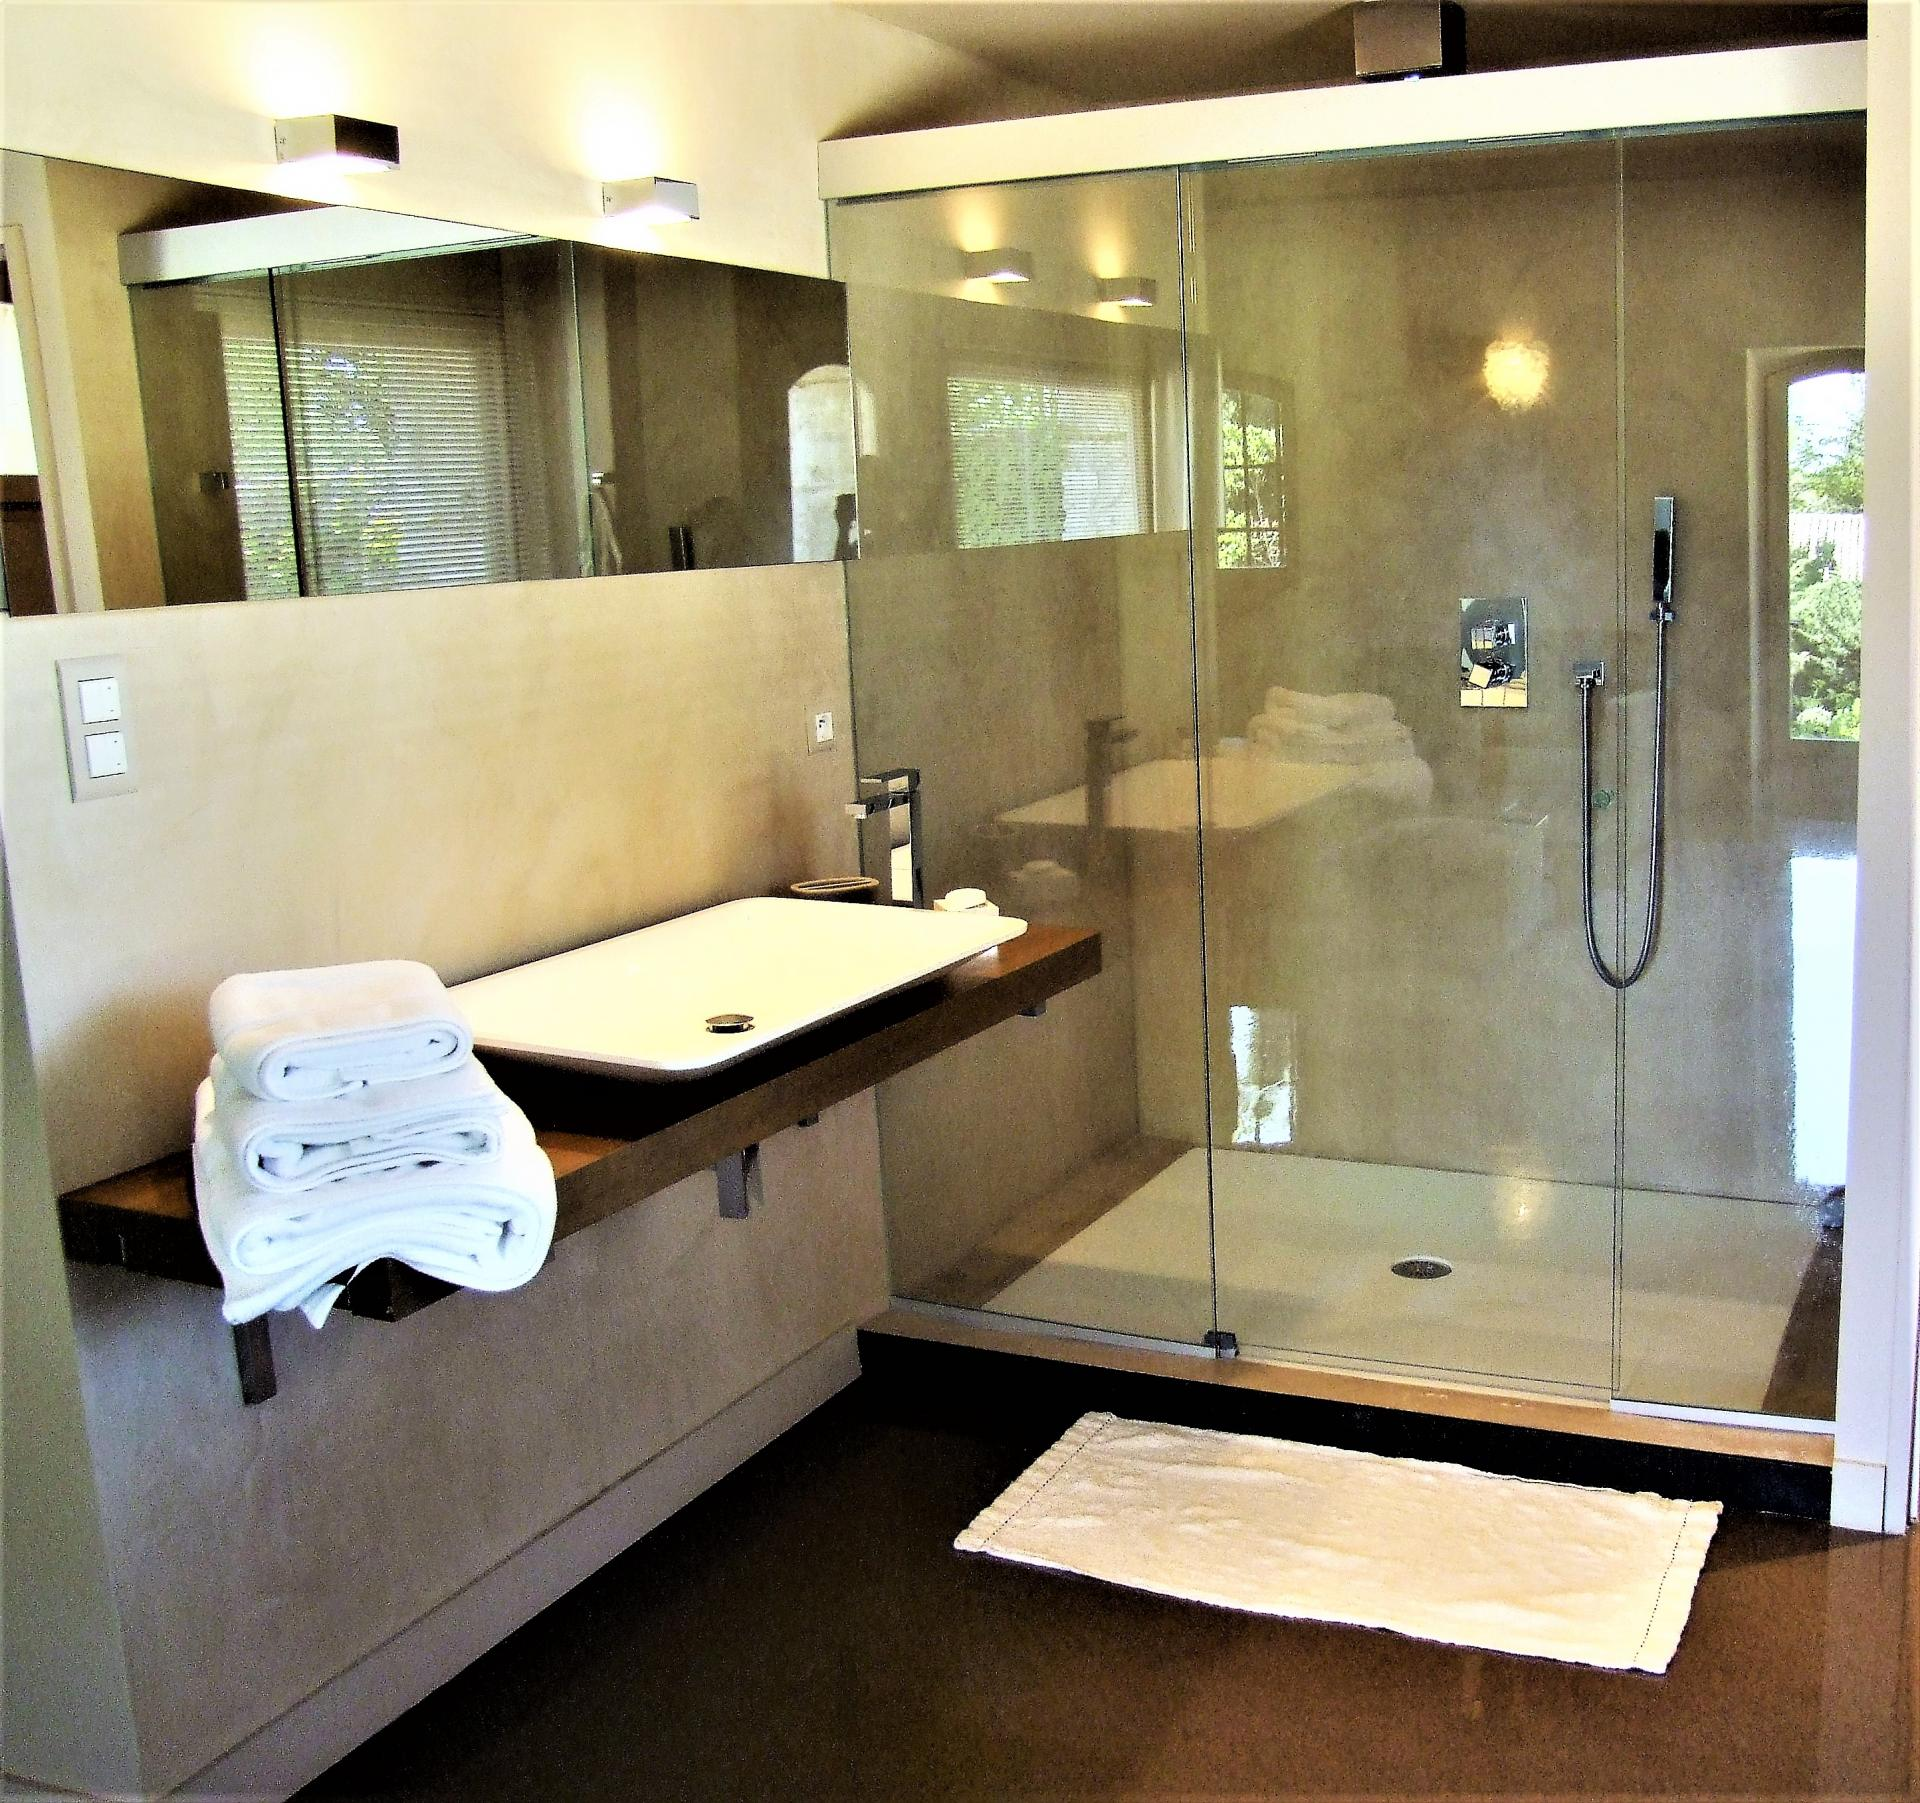 A BATHROOM WITH SHOWER IN LA DEMEURE DES SEIGNEURS VILLA